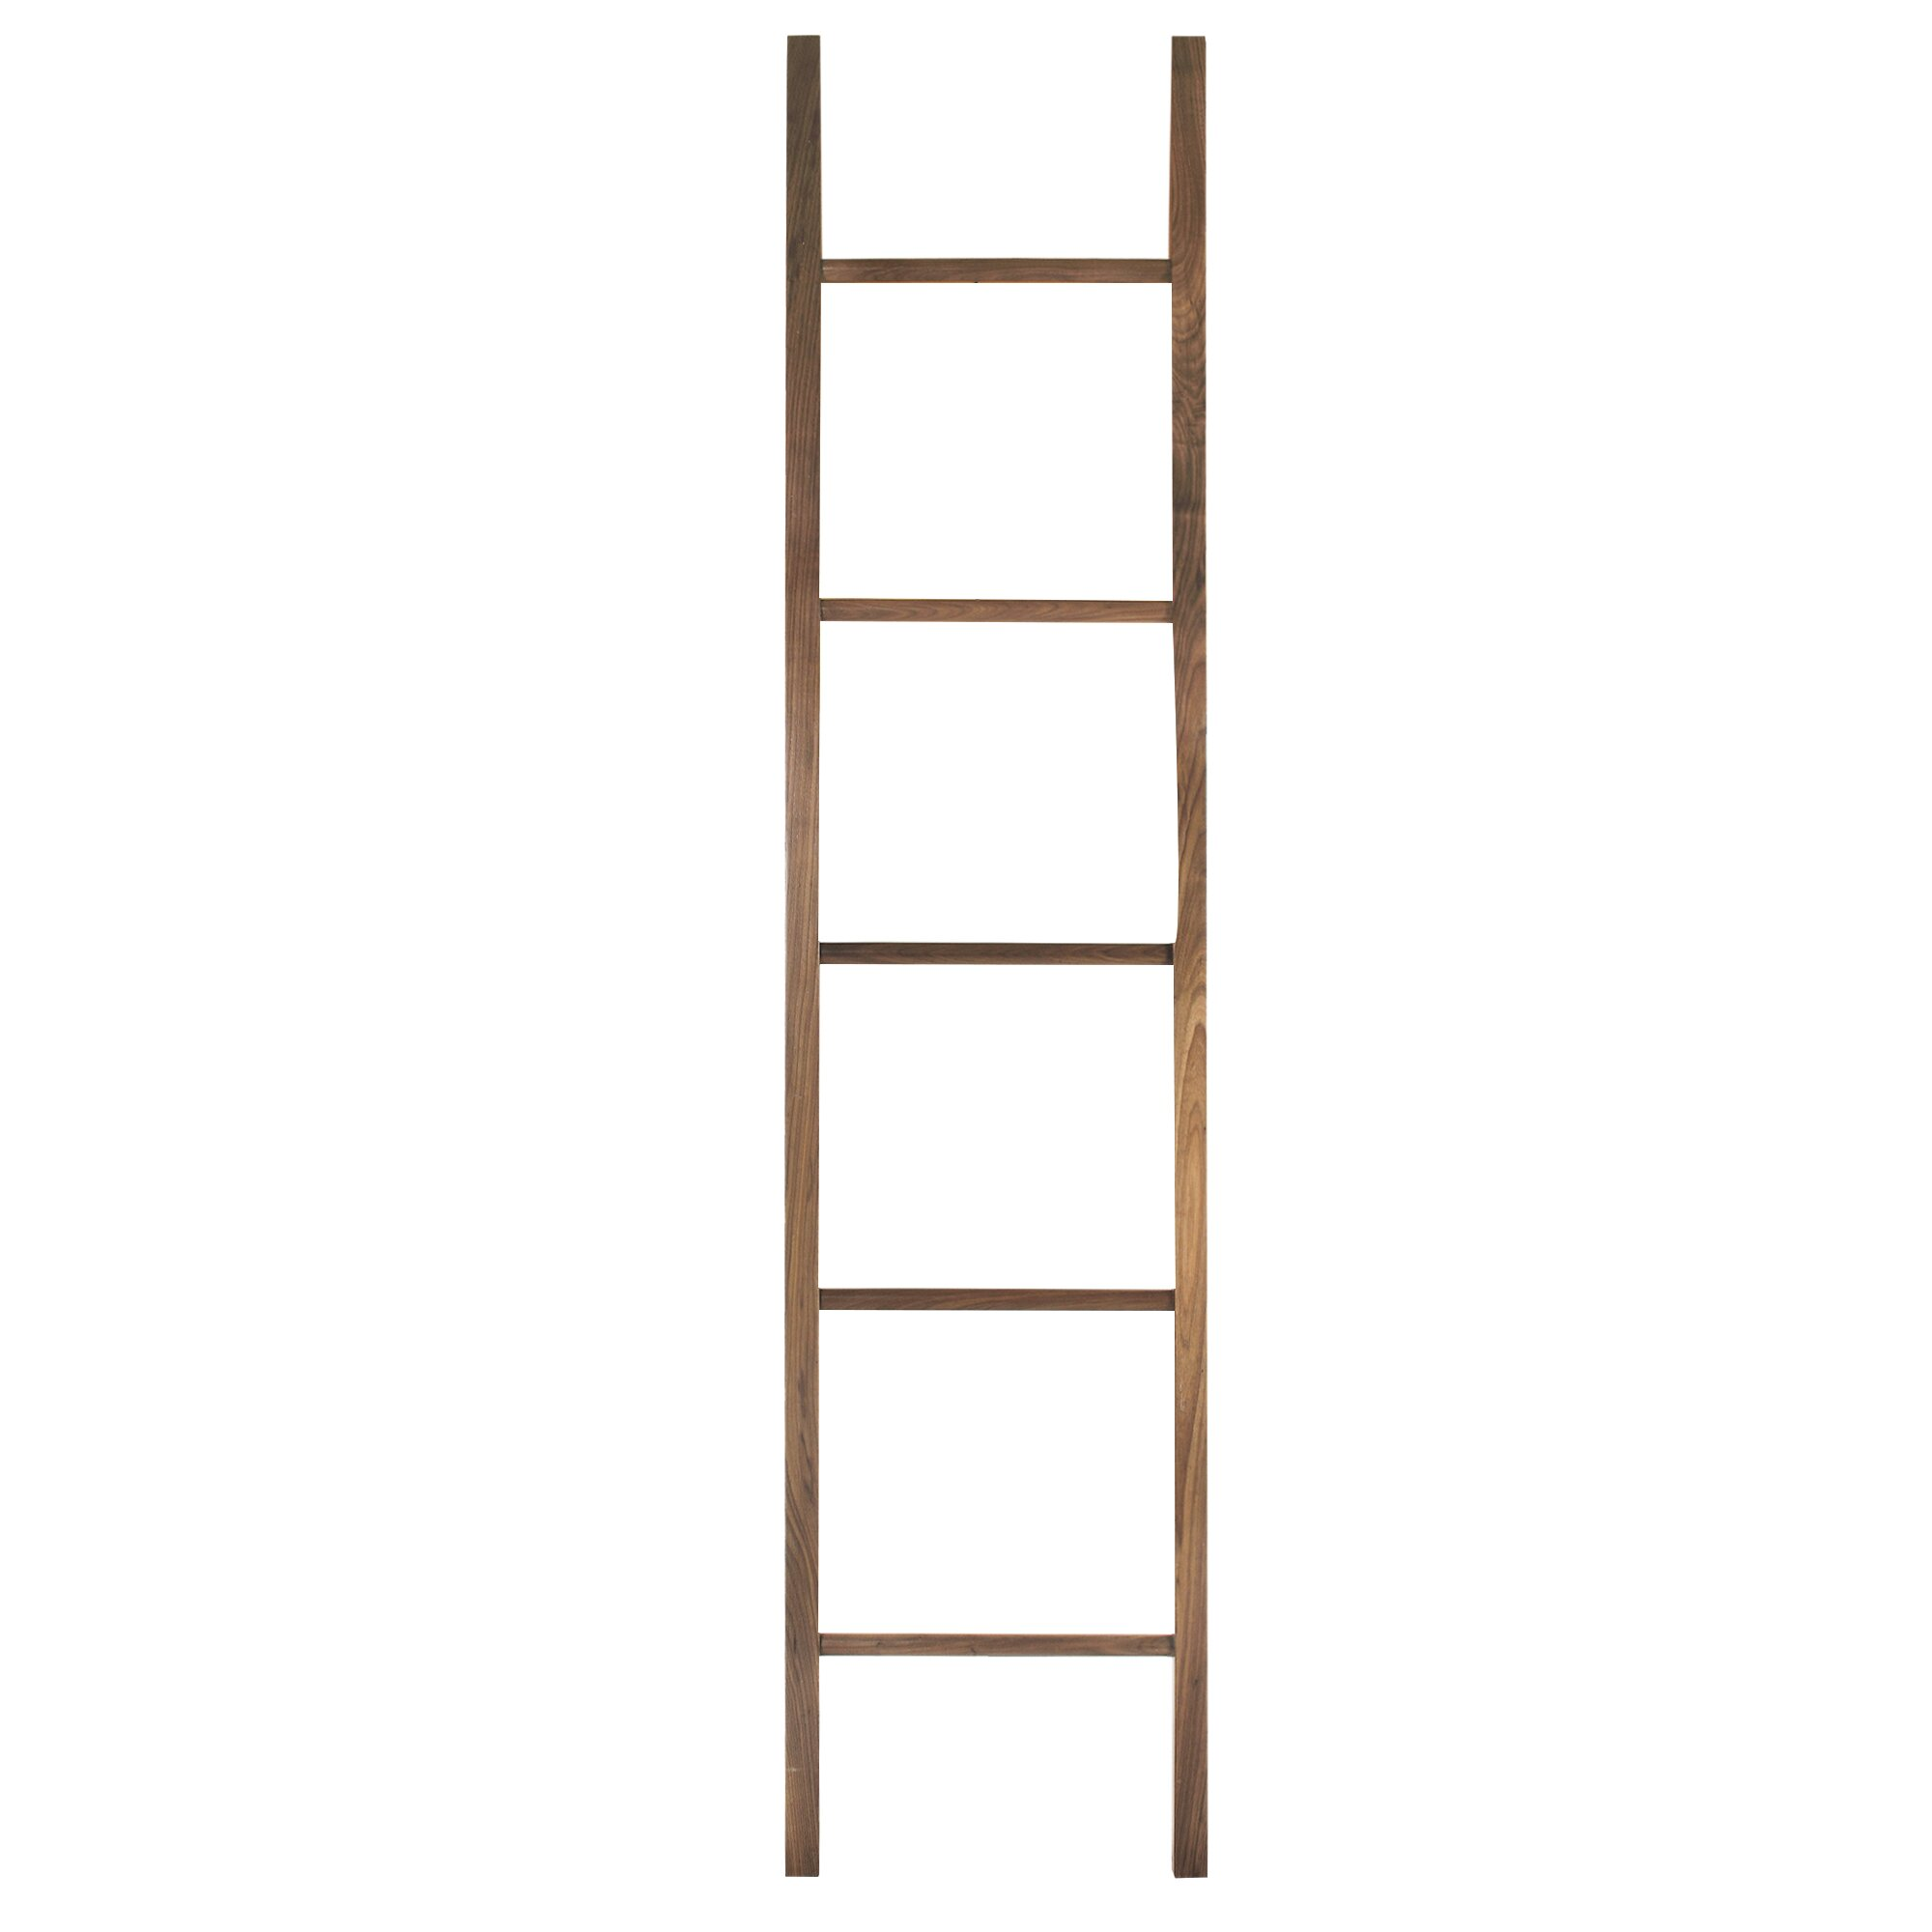 Casual home free standing decorative ladder reviews - Decorative ladder for bathroom ...